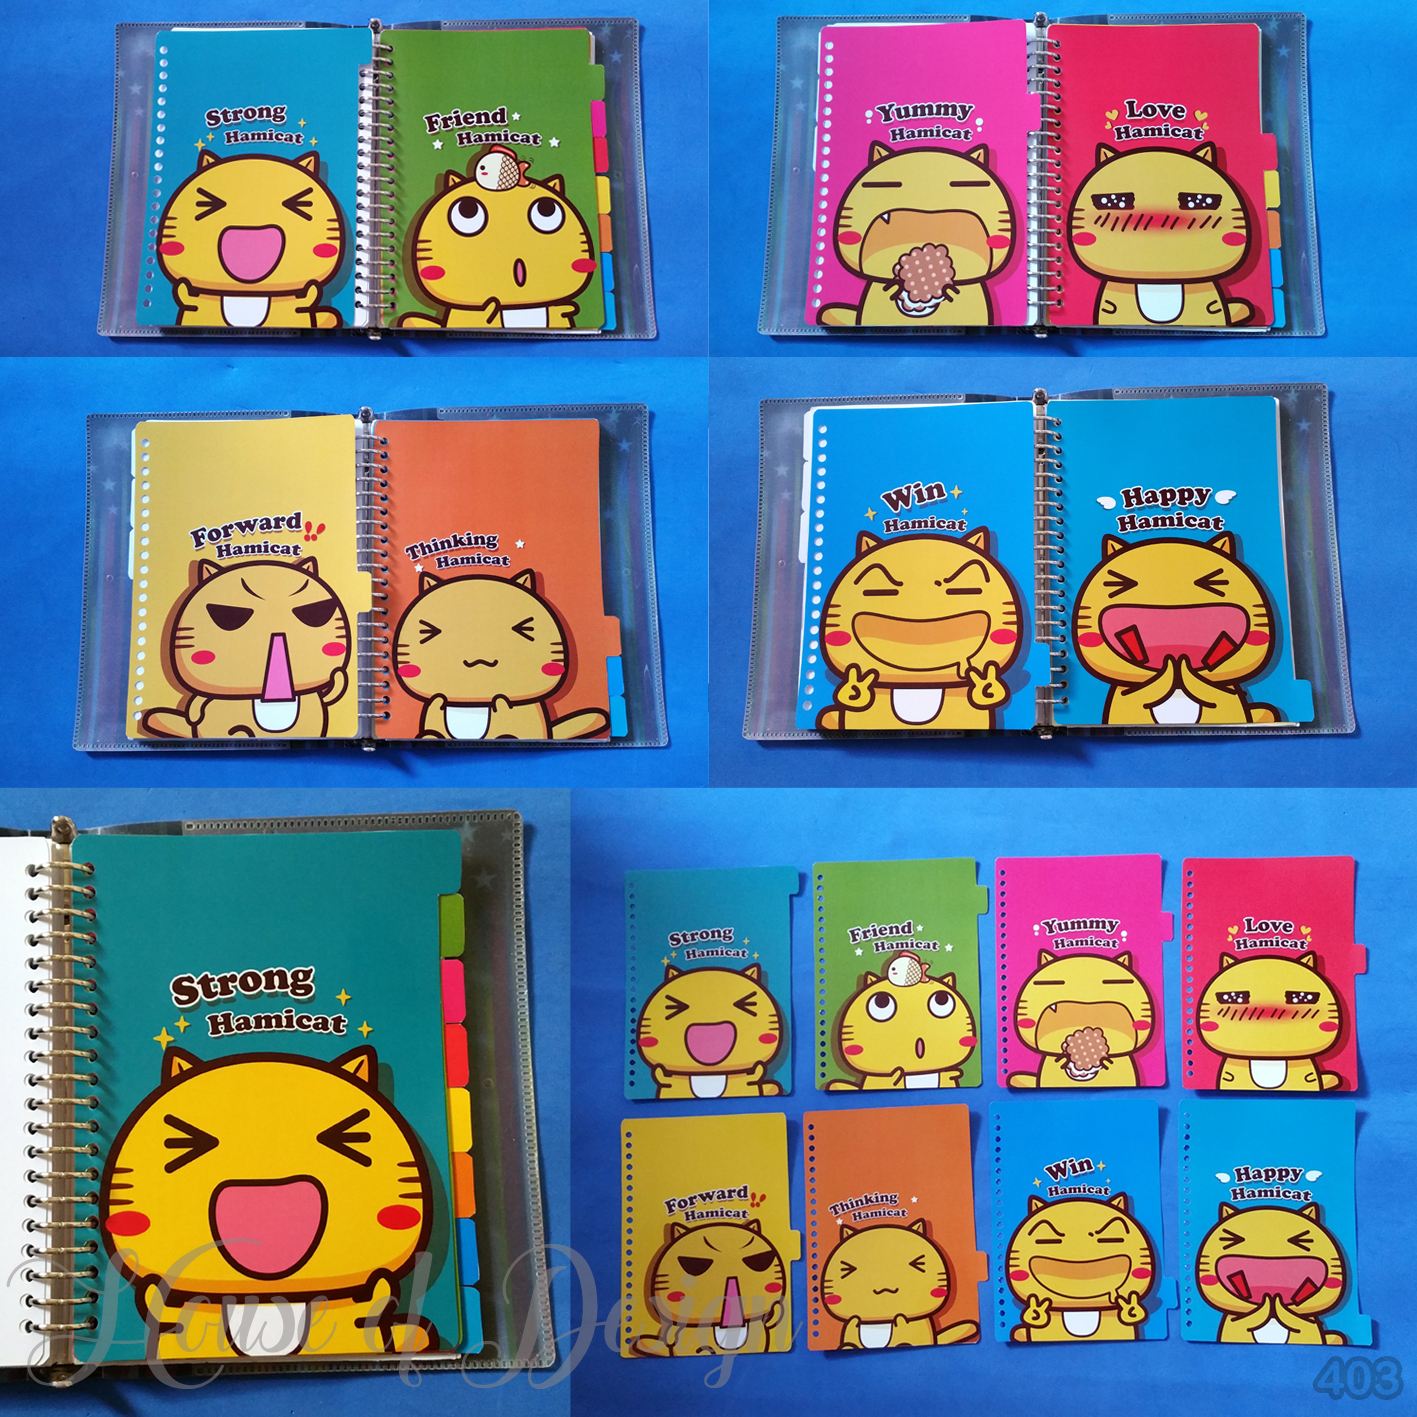 PAKET PEMBATAS BINDER SAMPING, PEMBATAS BINDER, DIVIDER BINDER CUSTOM, PEMBATAS BINDER CUSTOM, PEMBATAS BINDER 20 RING UKURAN A5 CUSTOM, PEMBATAS BINDER SAMPING, PEMBATAS BINDER HAMICAT, PEMBATAS BINDER CUTE CAT, PEMBATAS BINDER COLOR FULL